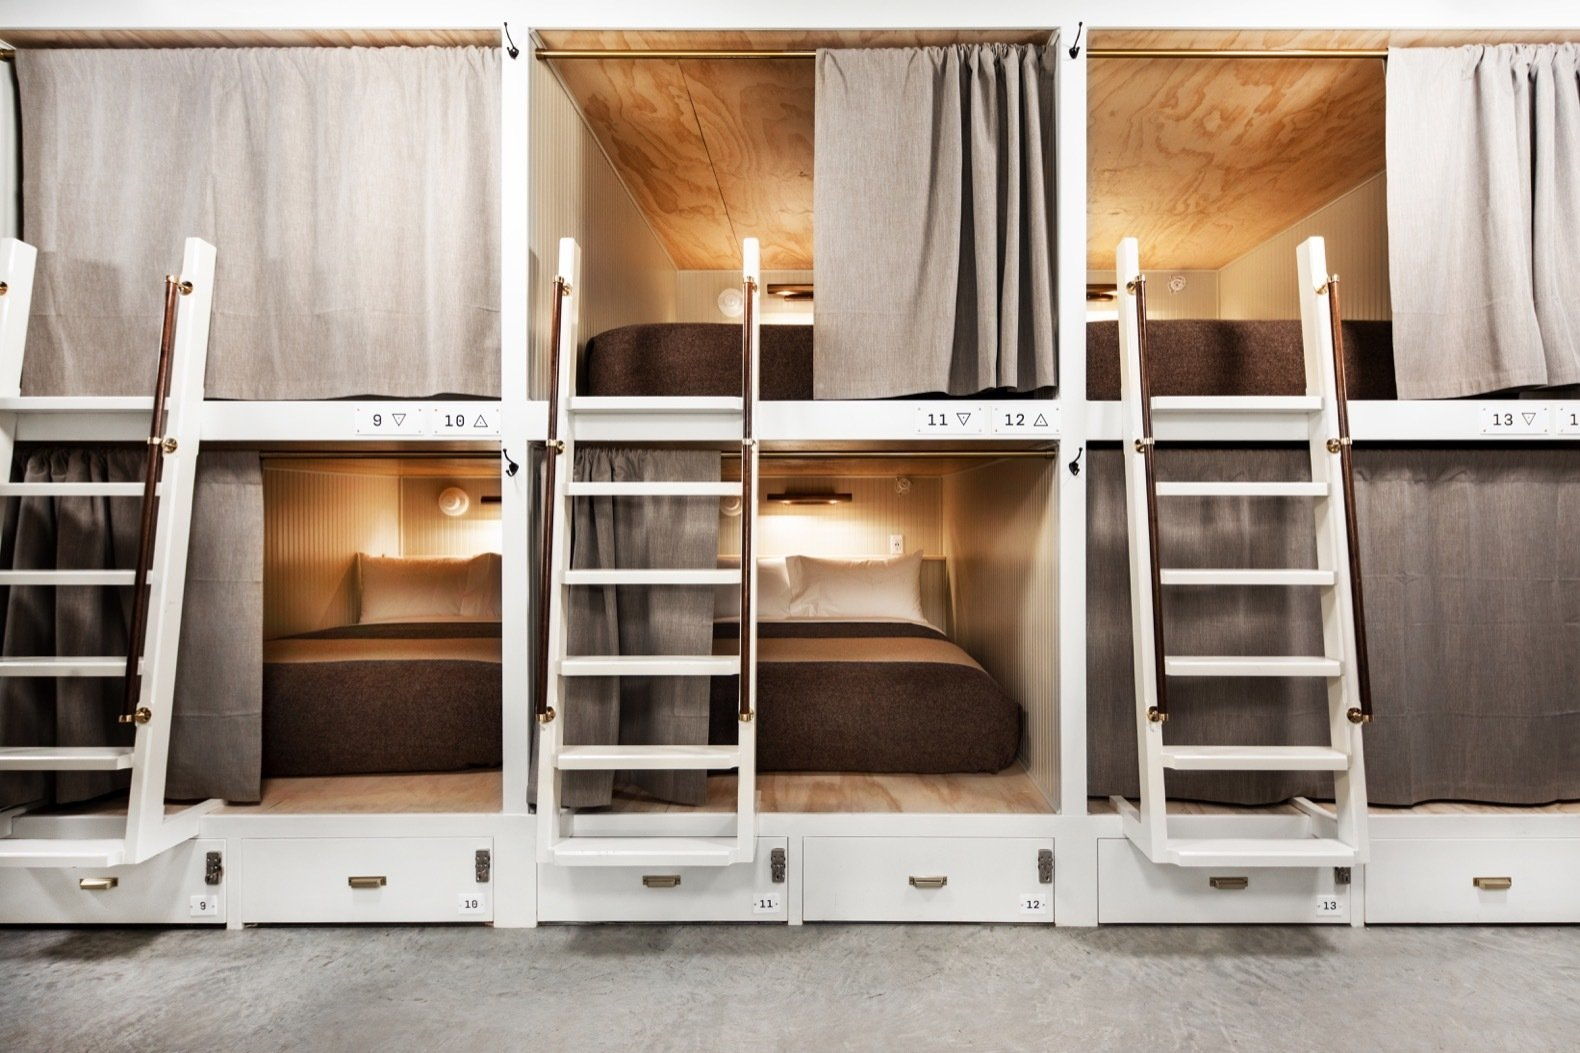 Cache House by Studio Tack bunk beds